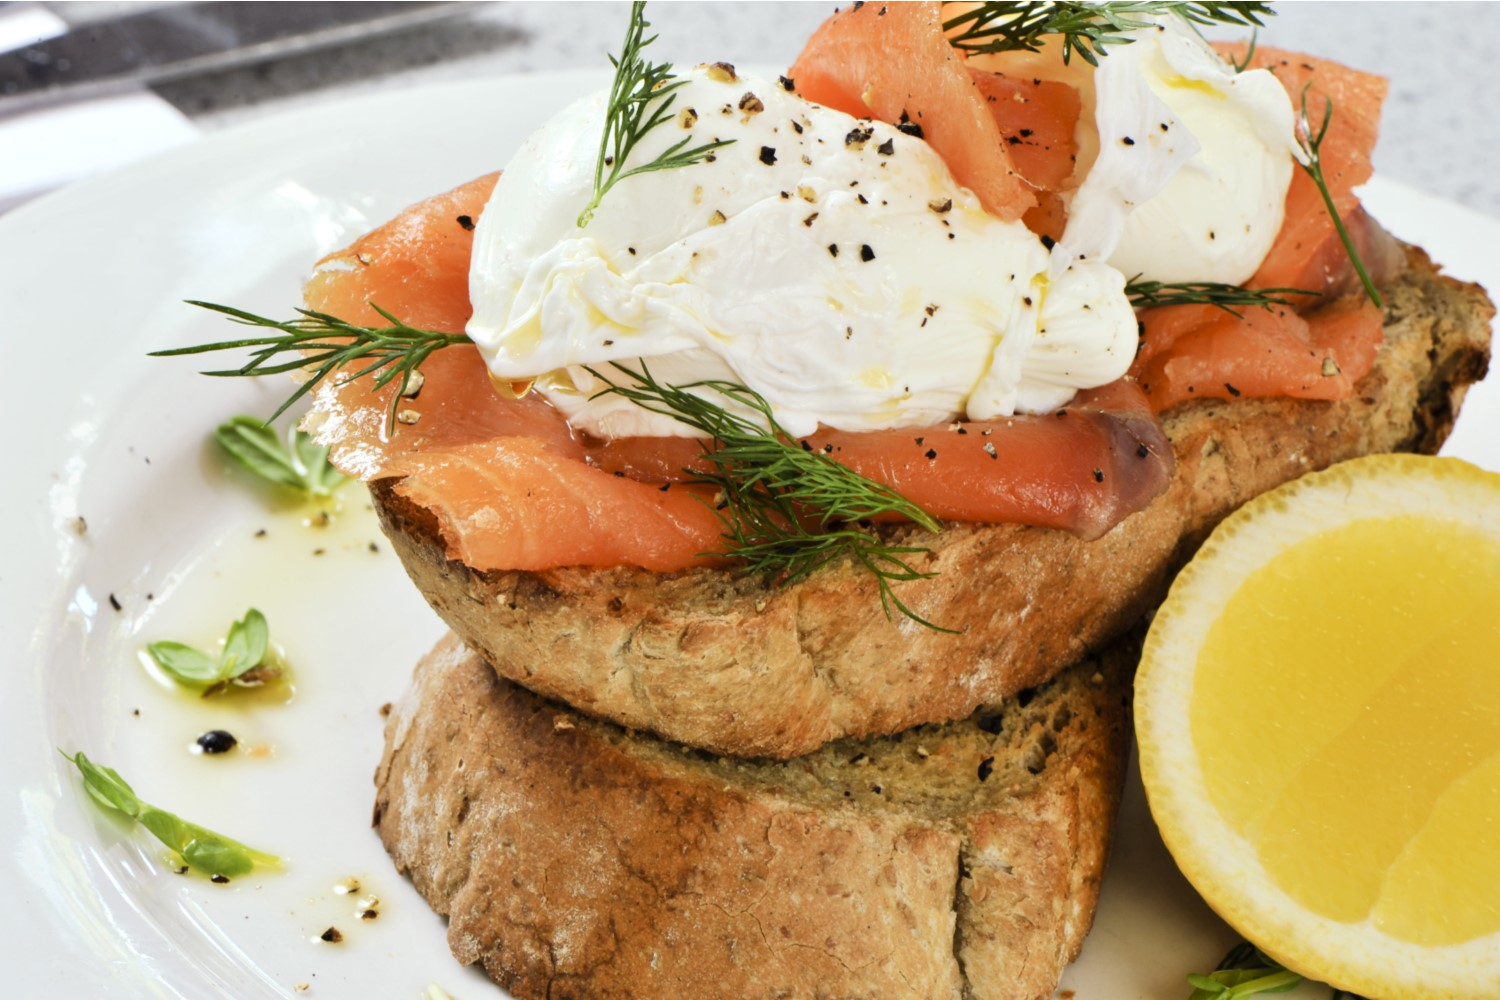 Poached Eggs with Salmon on Rustic Bread